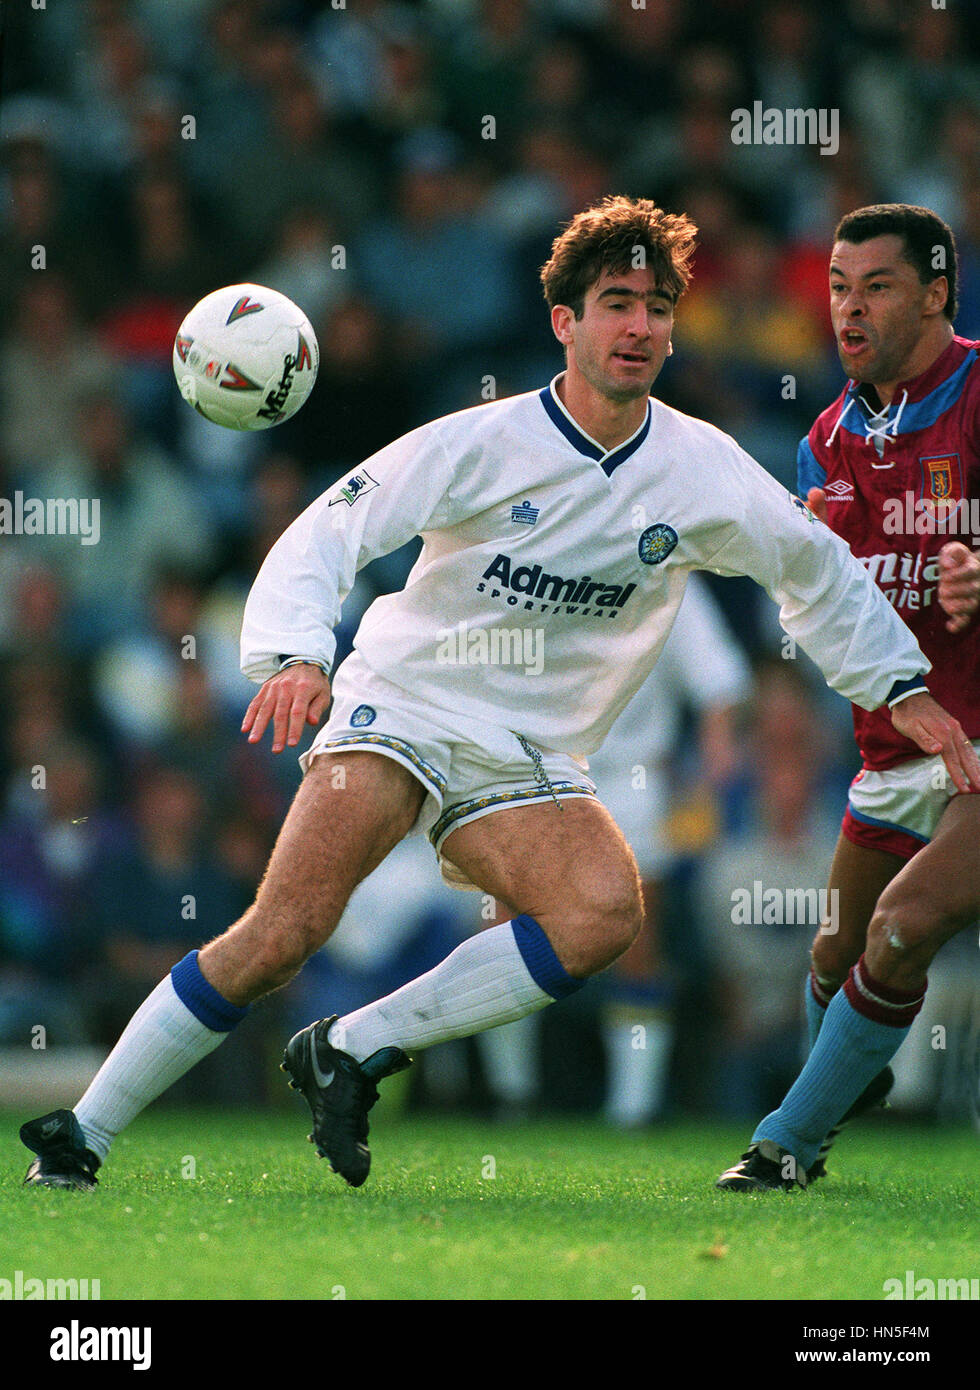 The story of how cantona ended up at old trafford has been told several times since november 1992, when he made the move from leeds united to their bitter. Eric Cantona Leeds United Fc 14 September 1992 Stock Photo Alamy